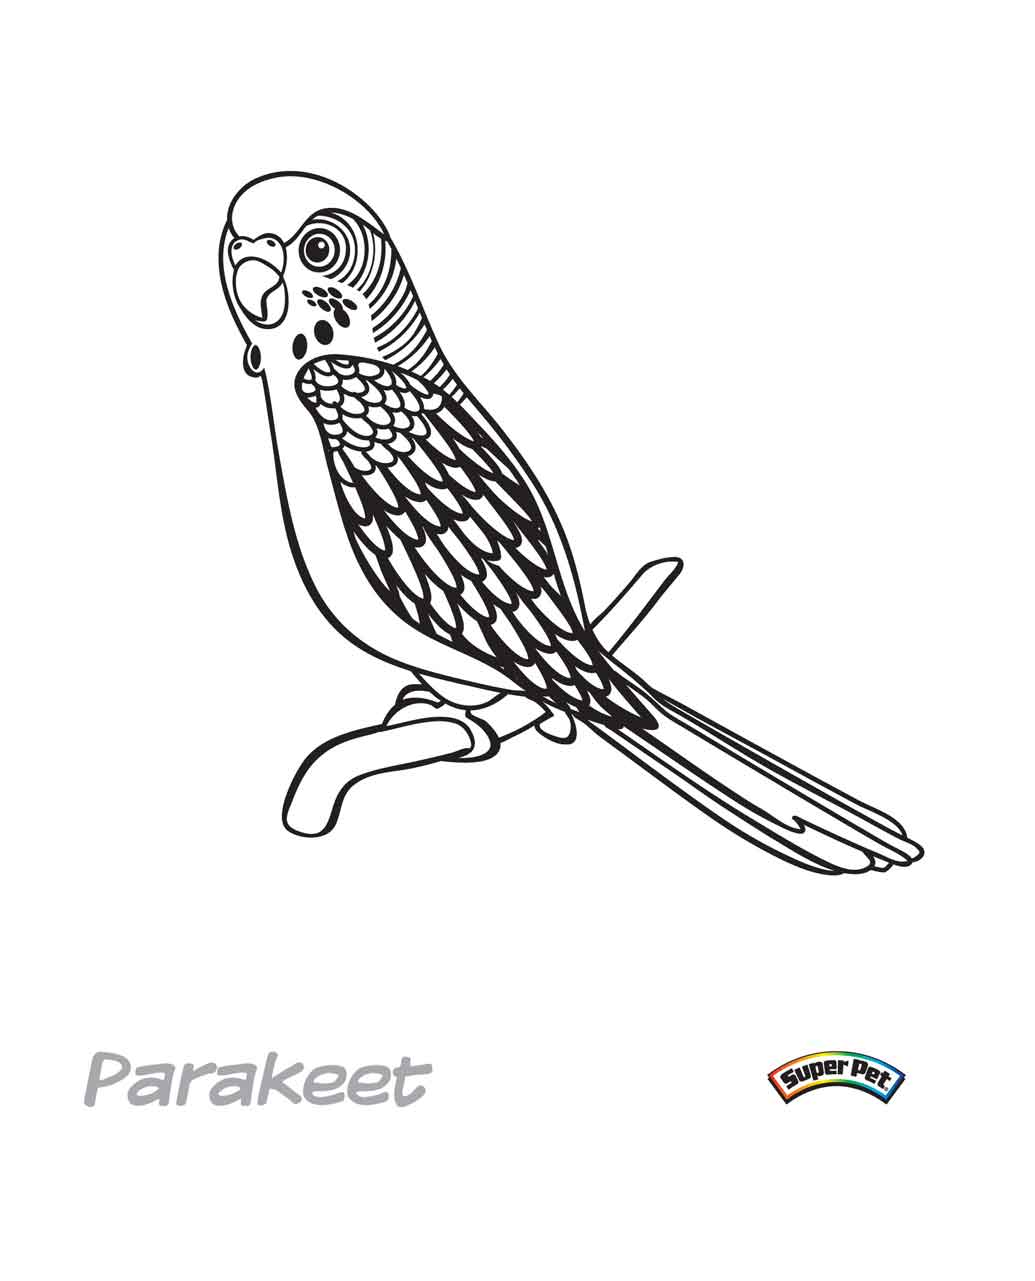 Parakeet coloring #16, Download drawings